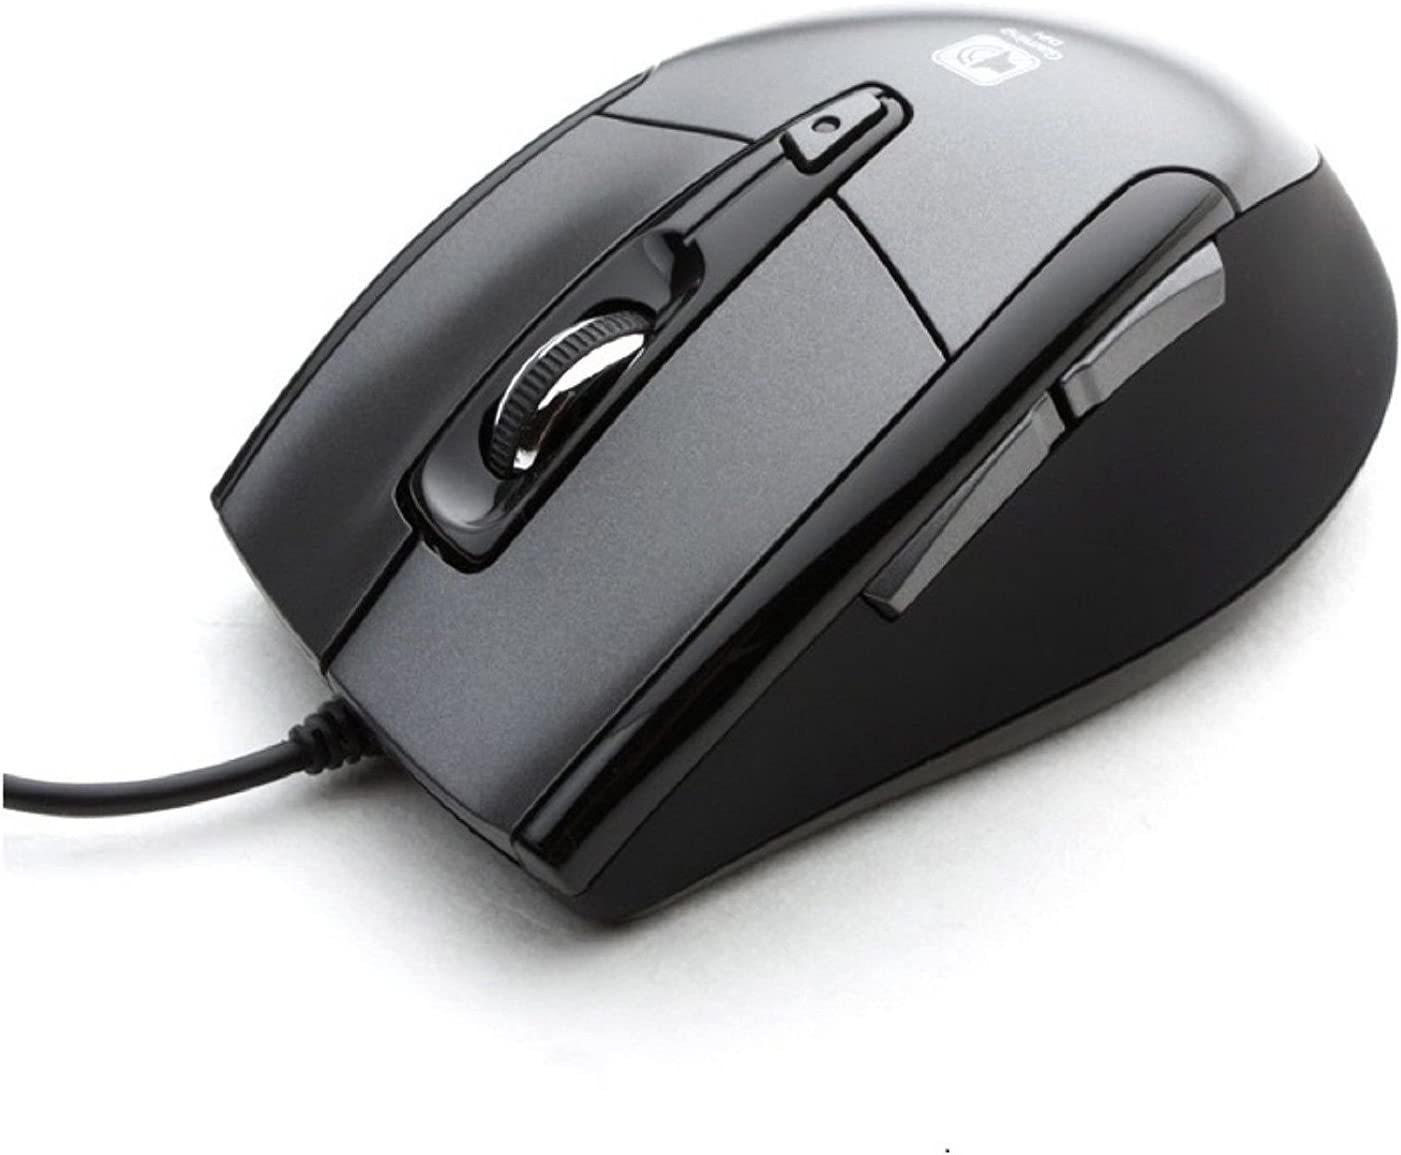 Noiseless USB Optical Gaming Computer Wheel Mouse 1600 DPI Super Quiet JNL-101K Black Silent